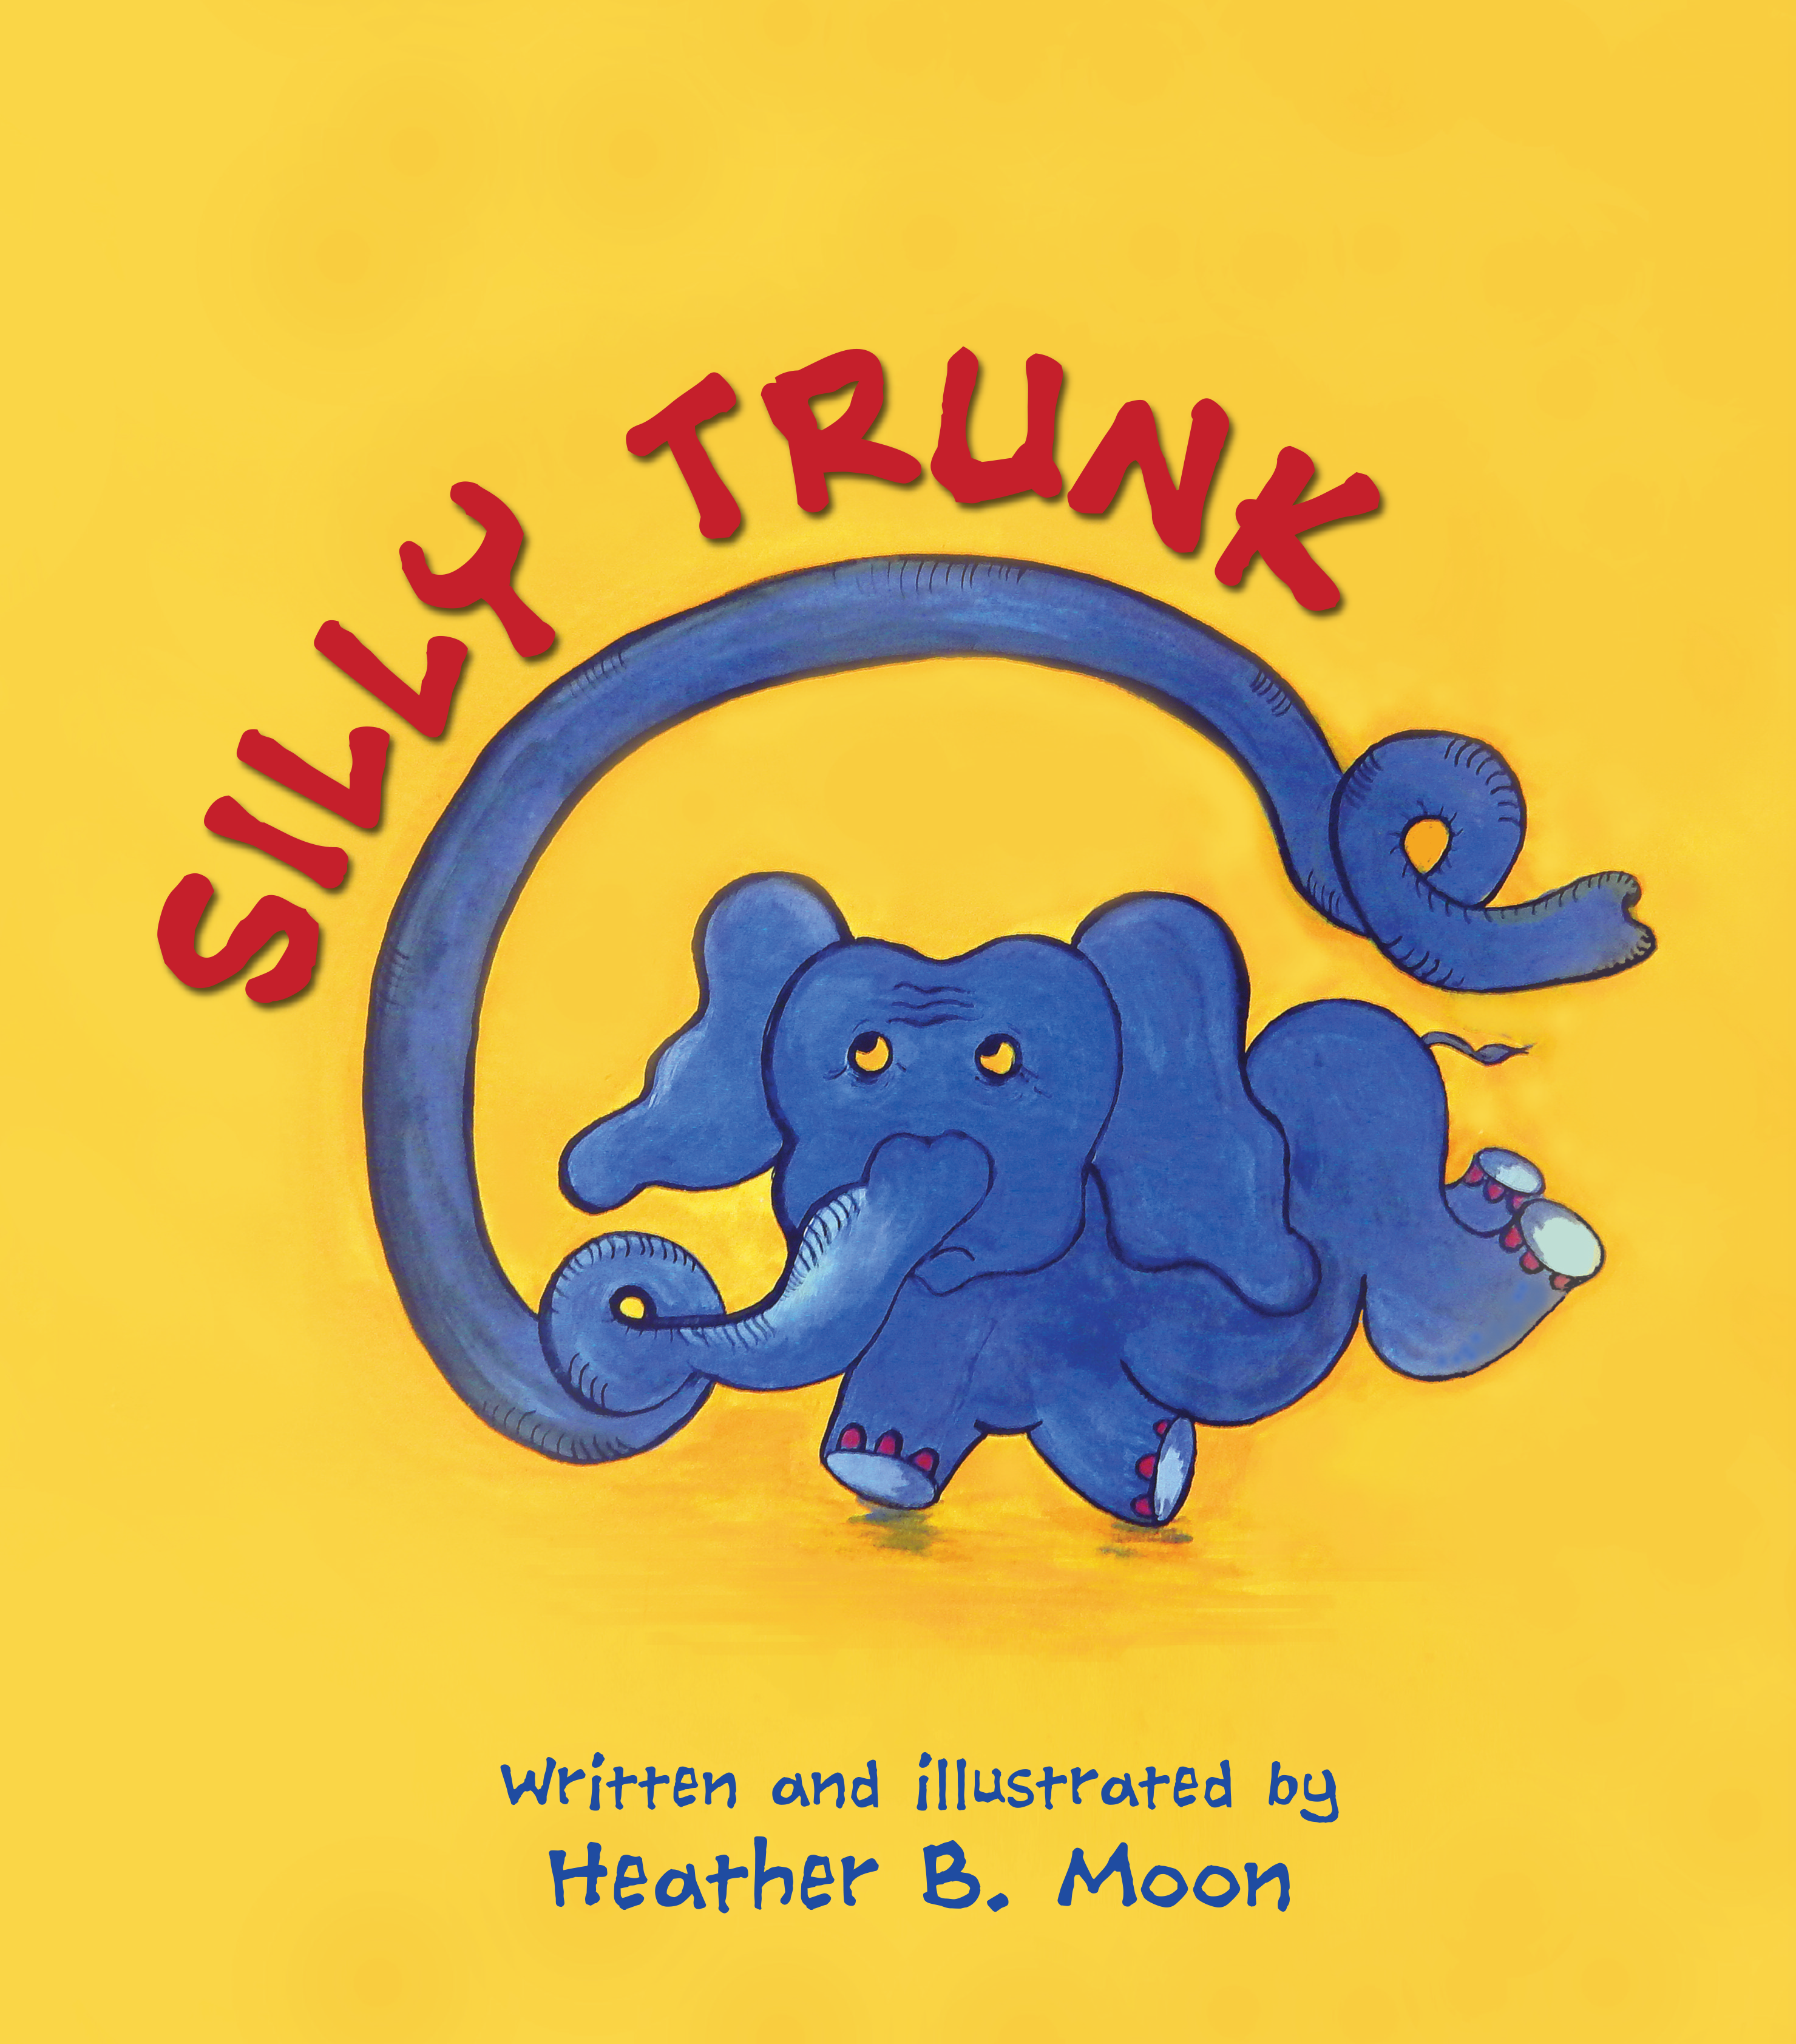 Silly Trunk by Heather B. Moon